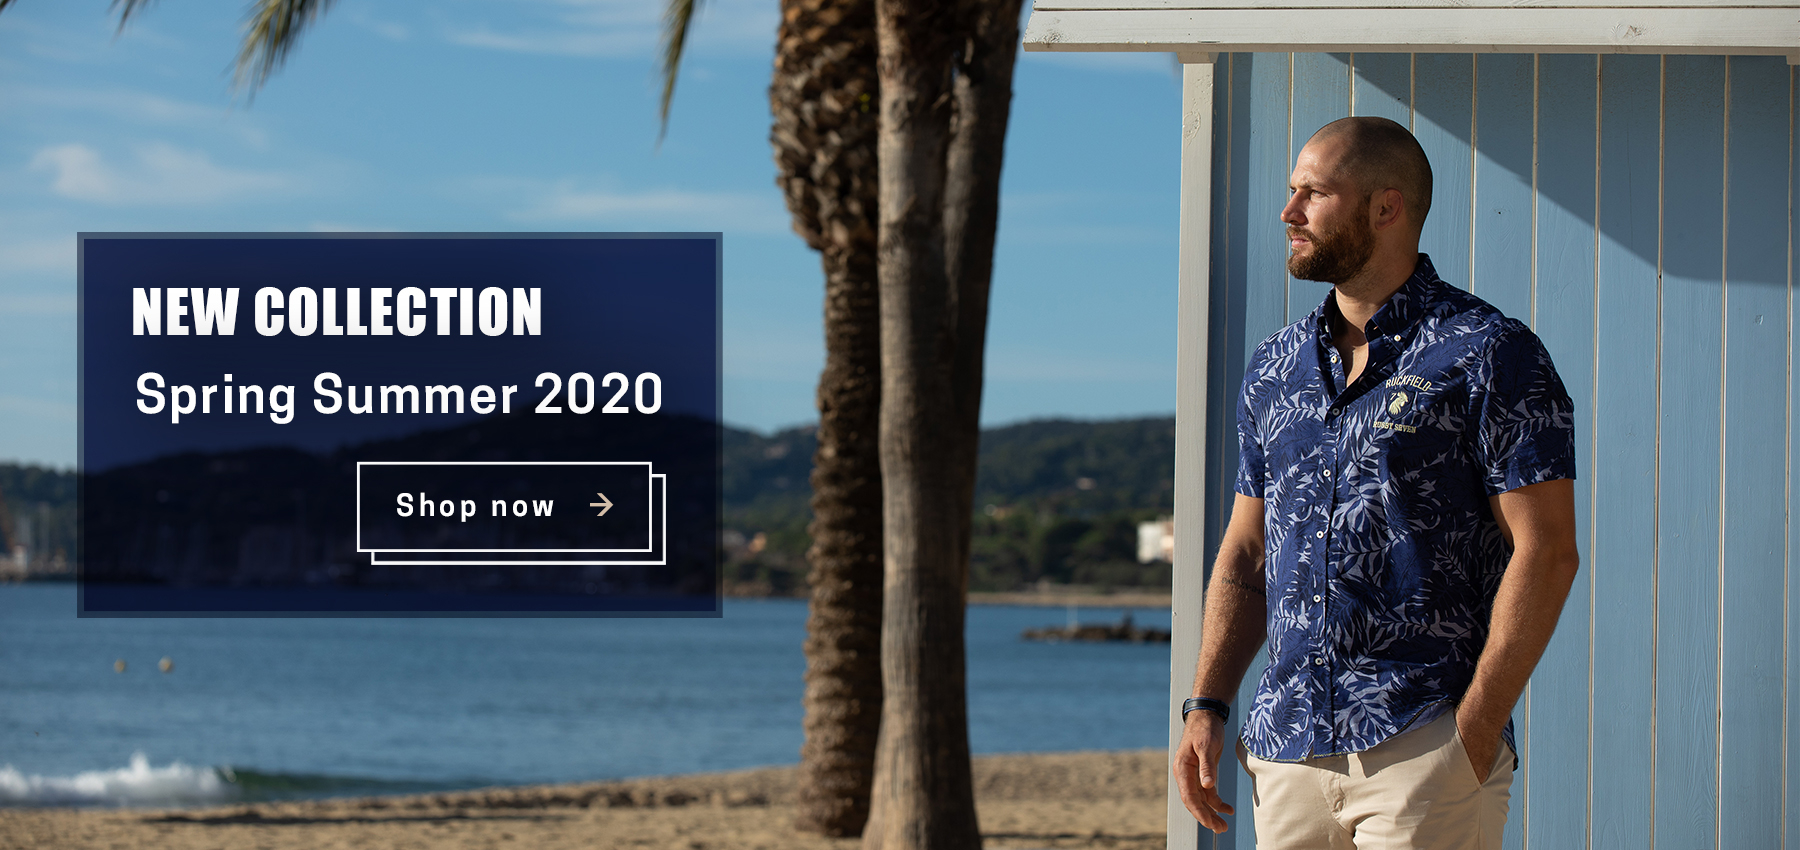 New collection Ruckfield spring summer 2020